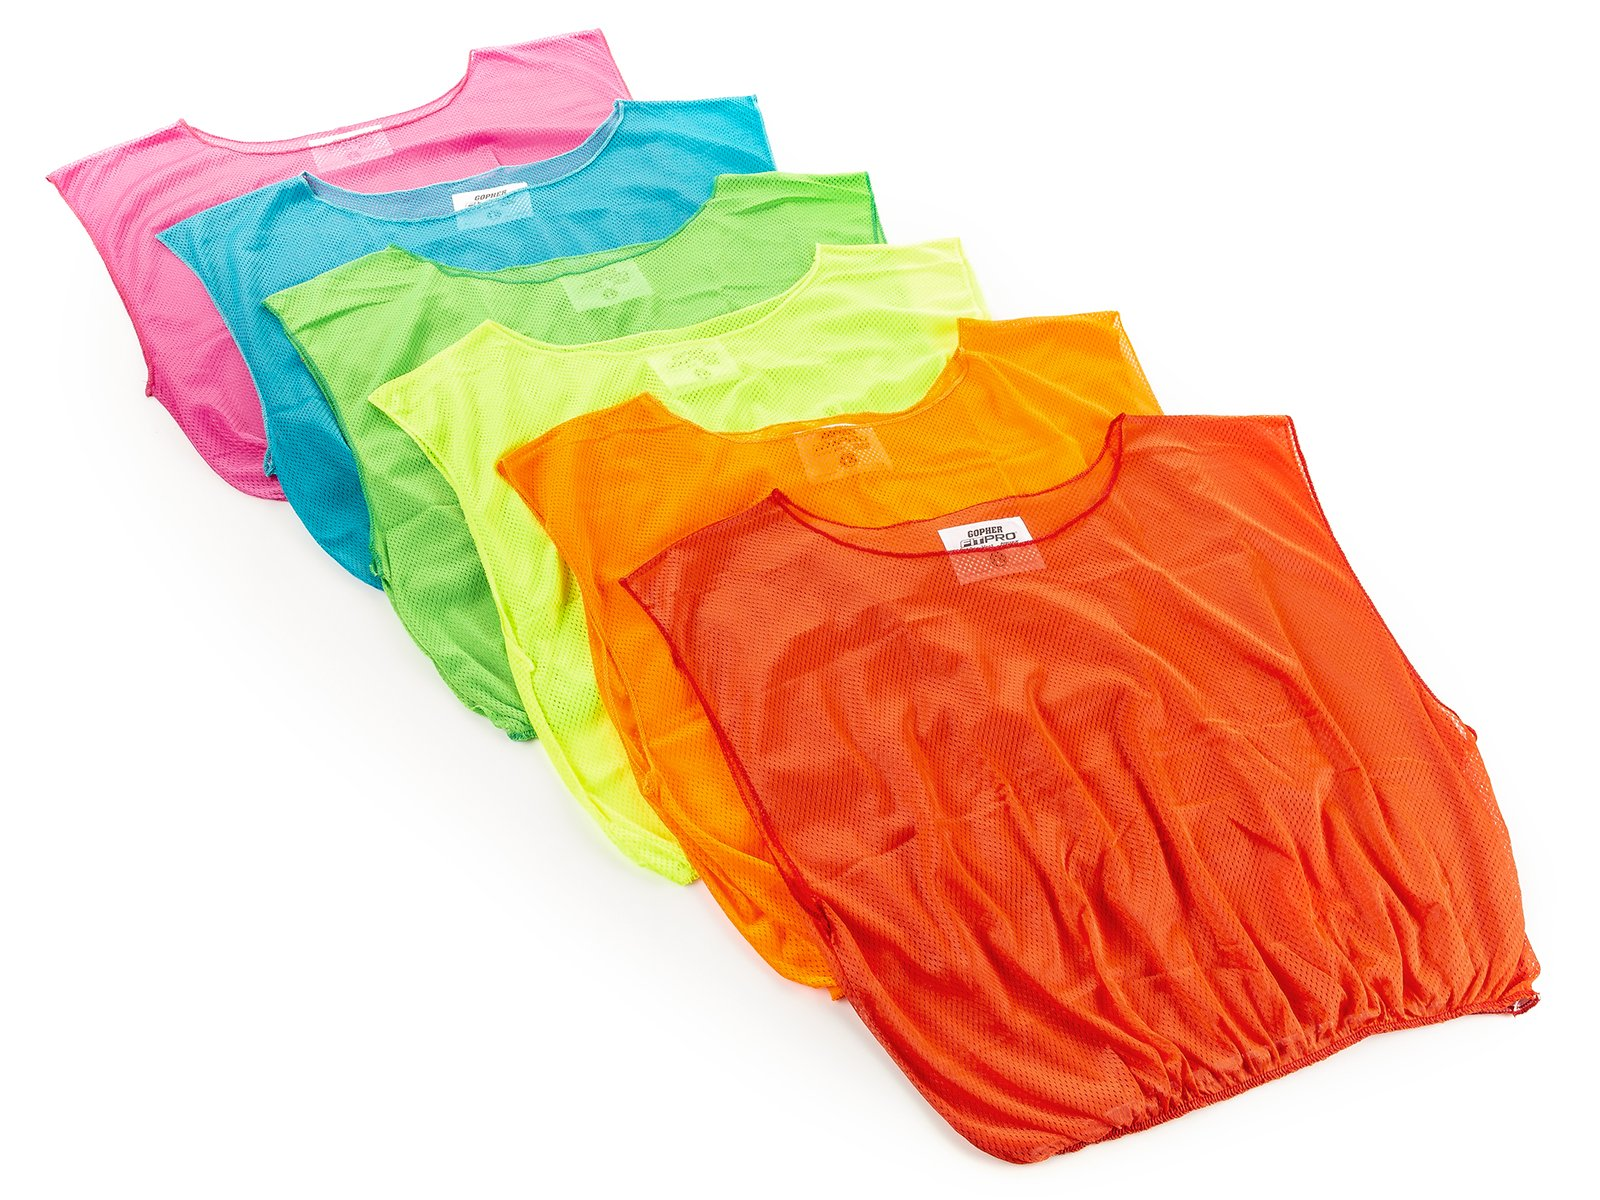 Introductory mesh vests in fun Screamin' colors!